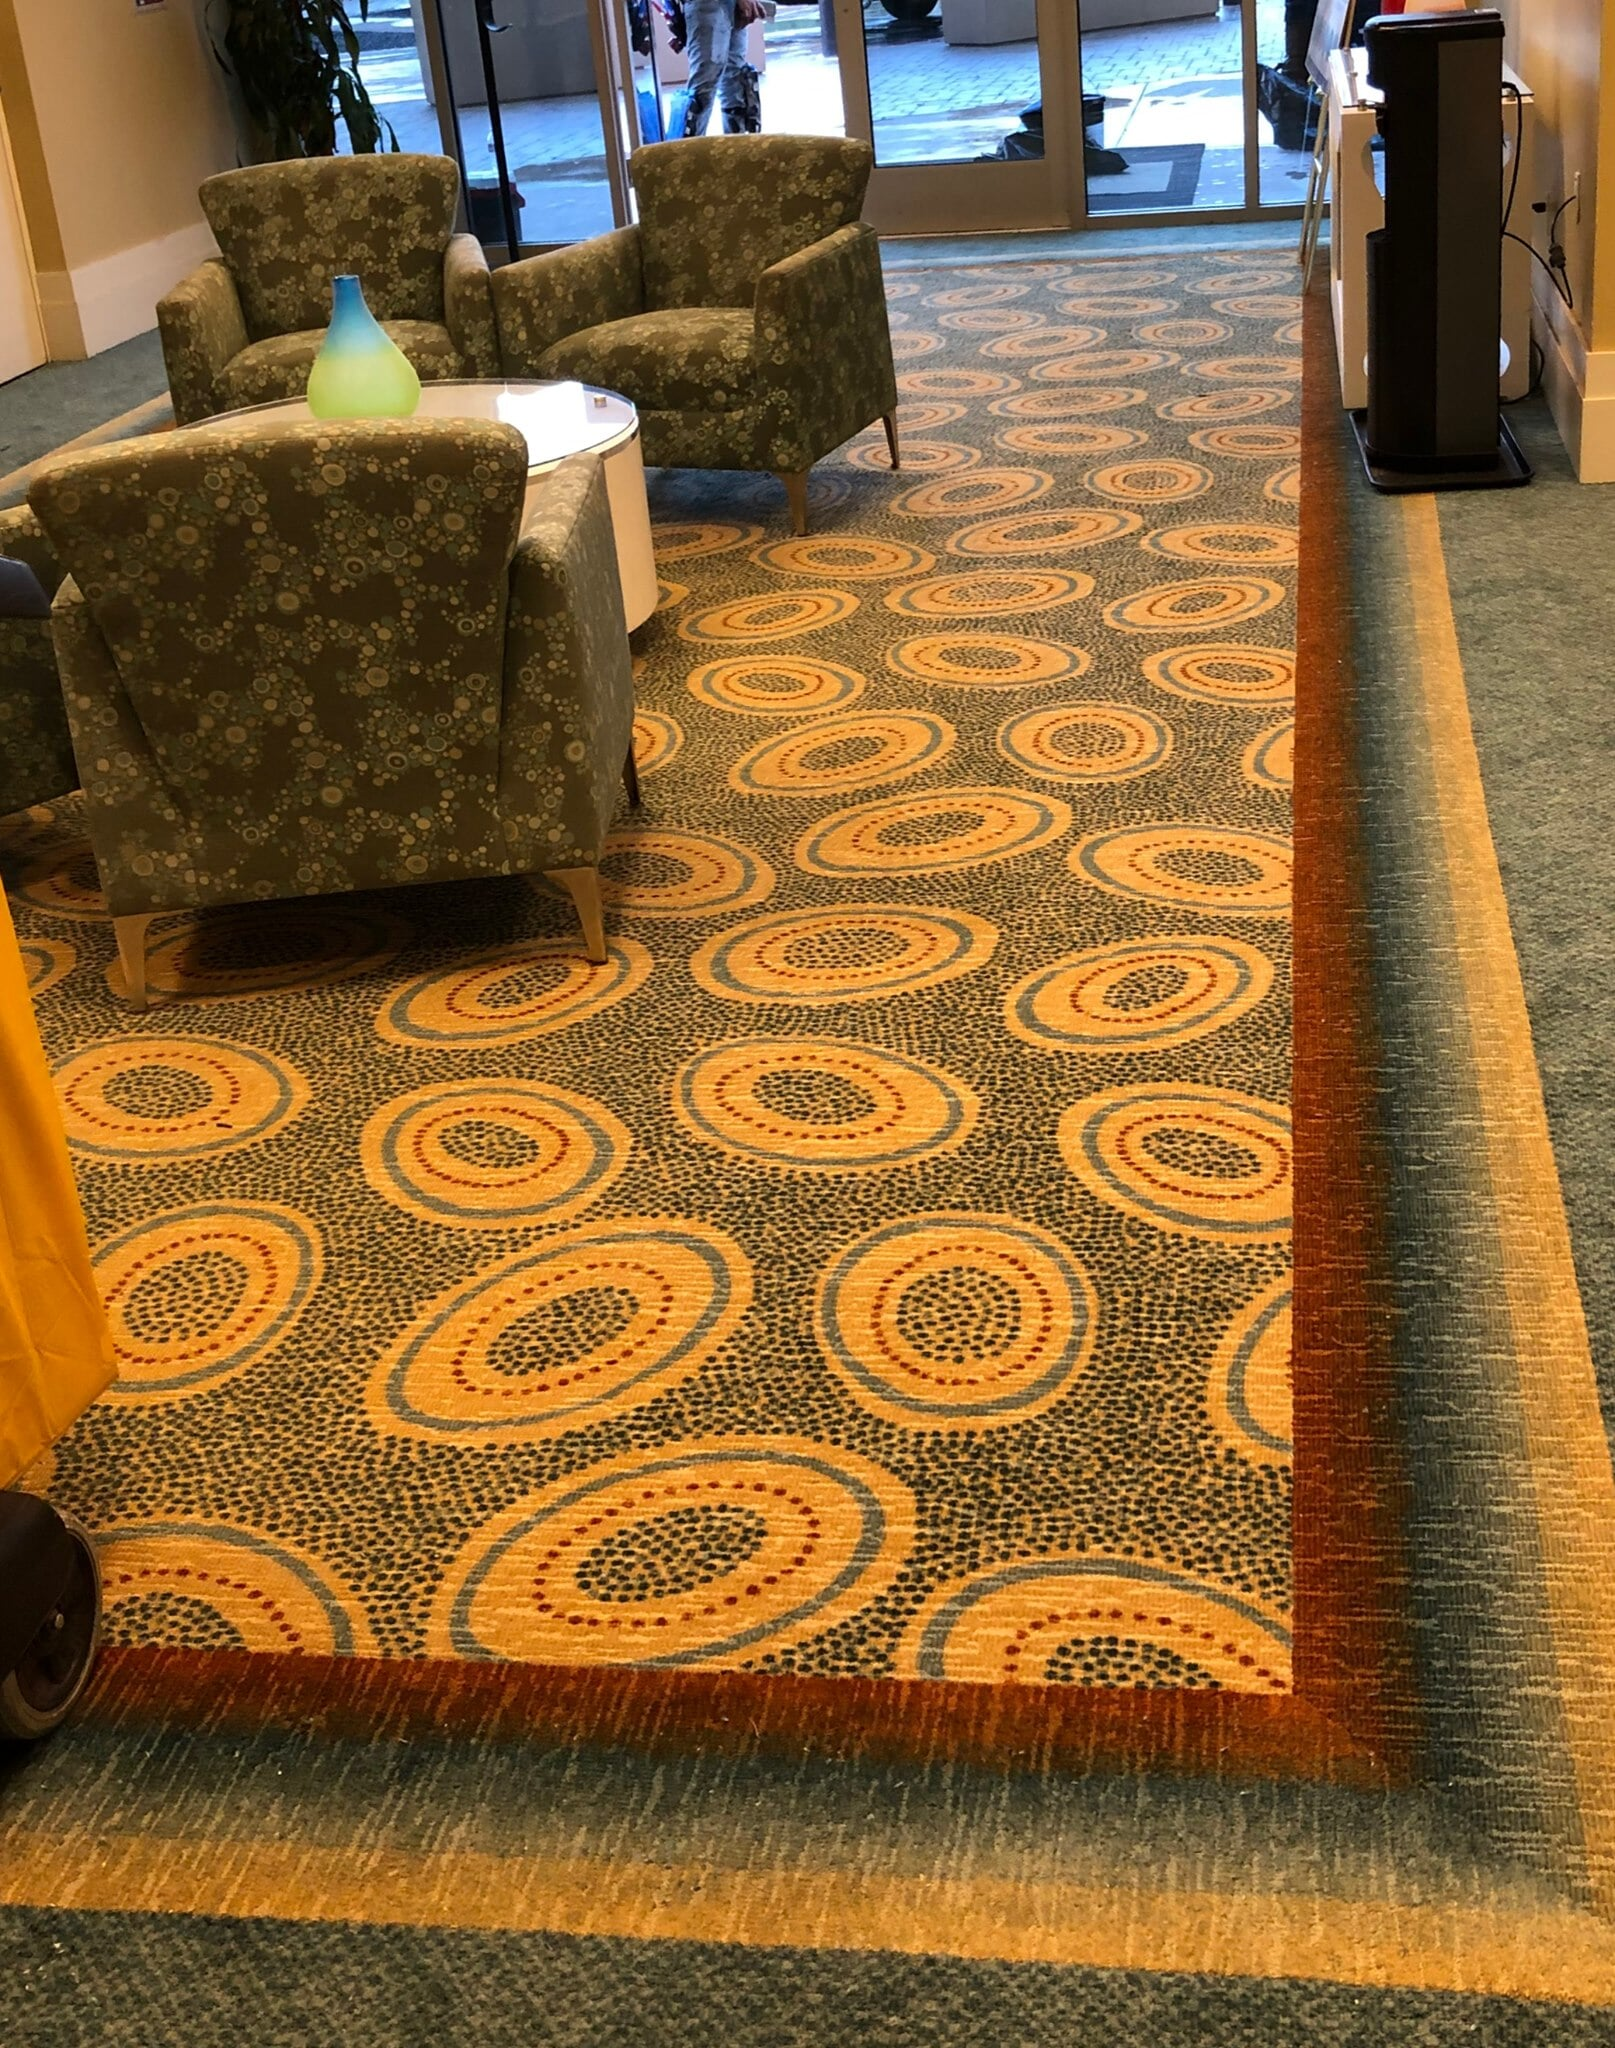 Commercial pattern carpet flooring from StarFloors in Southlake, TX